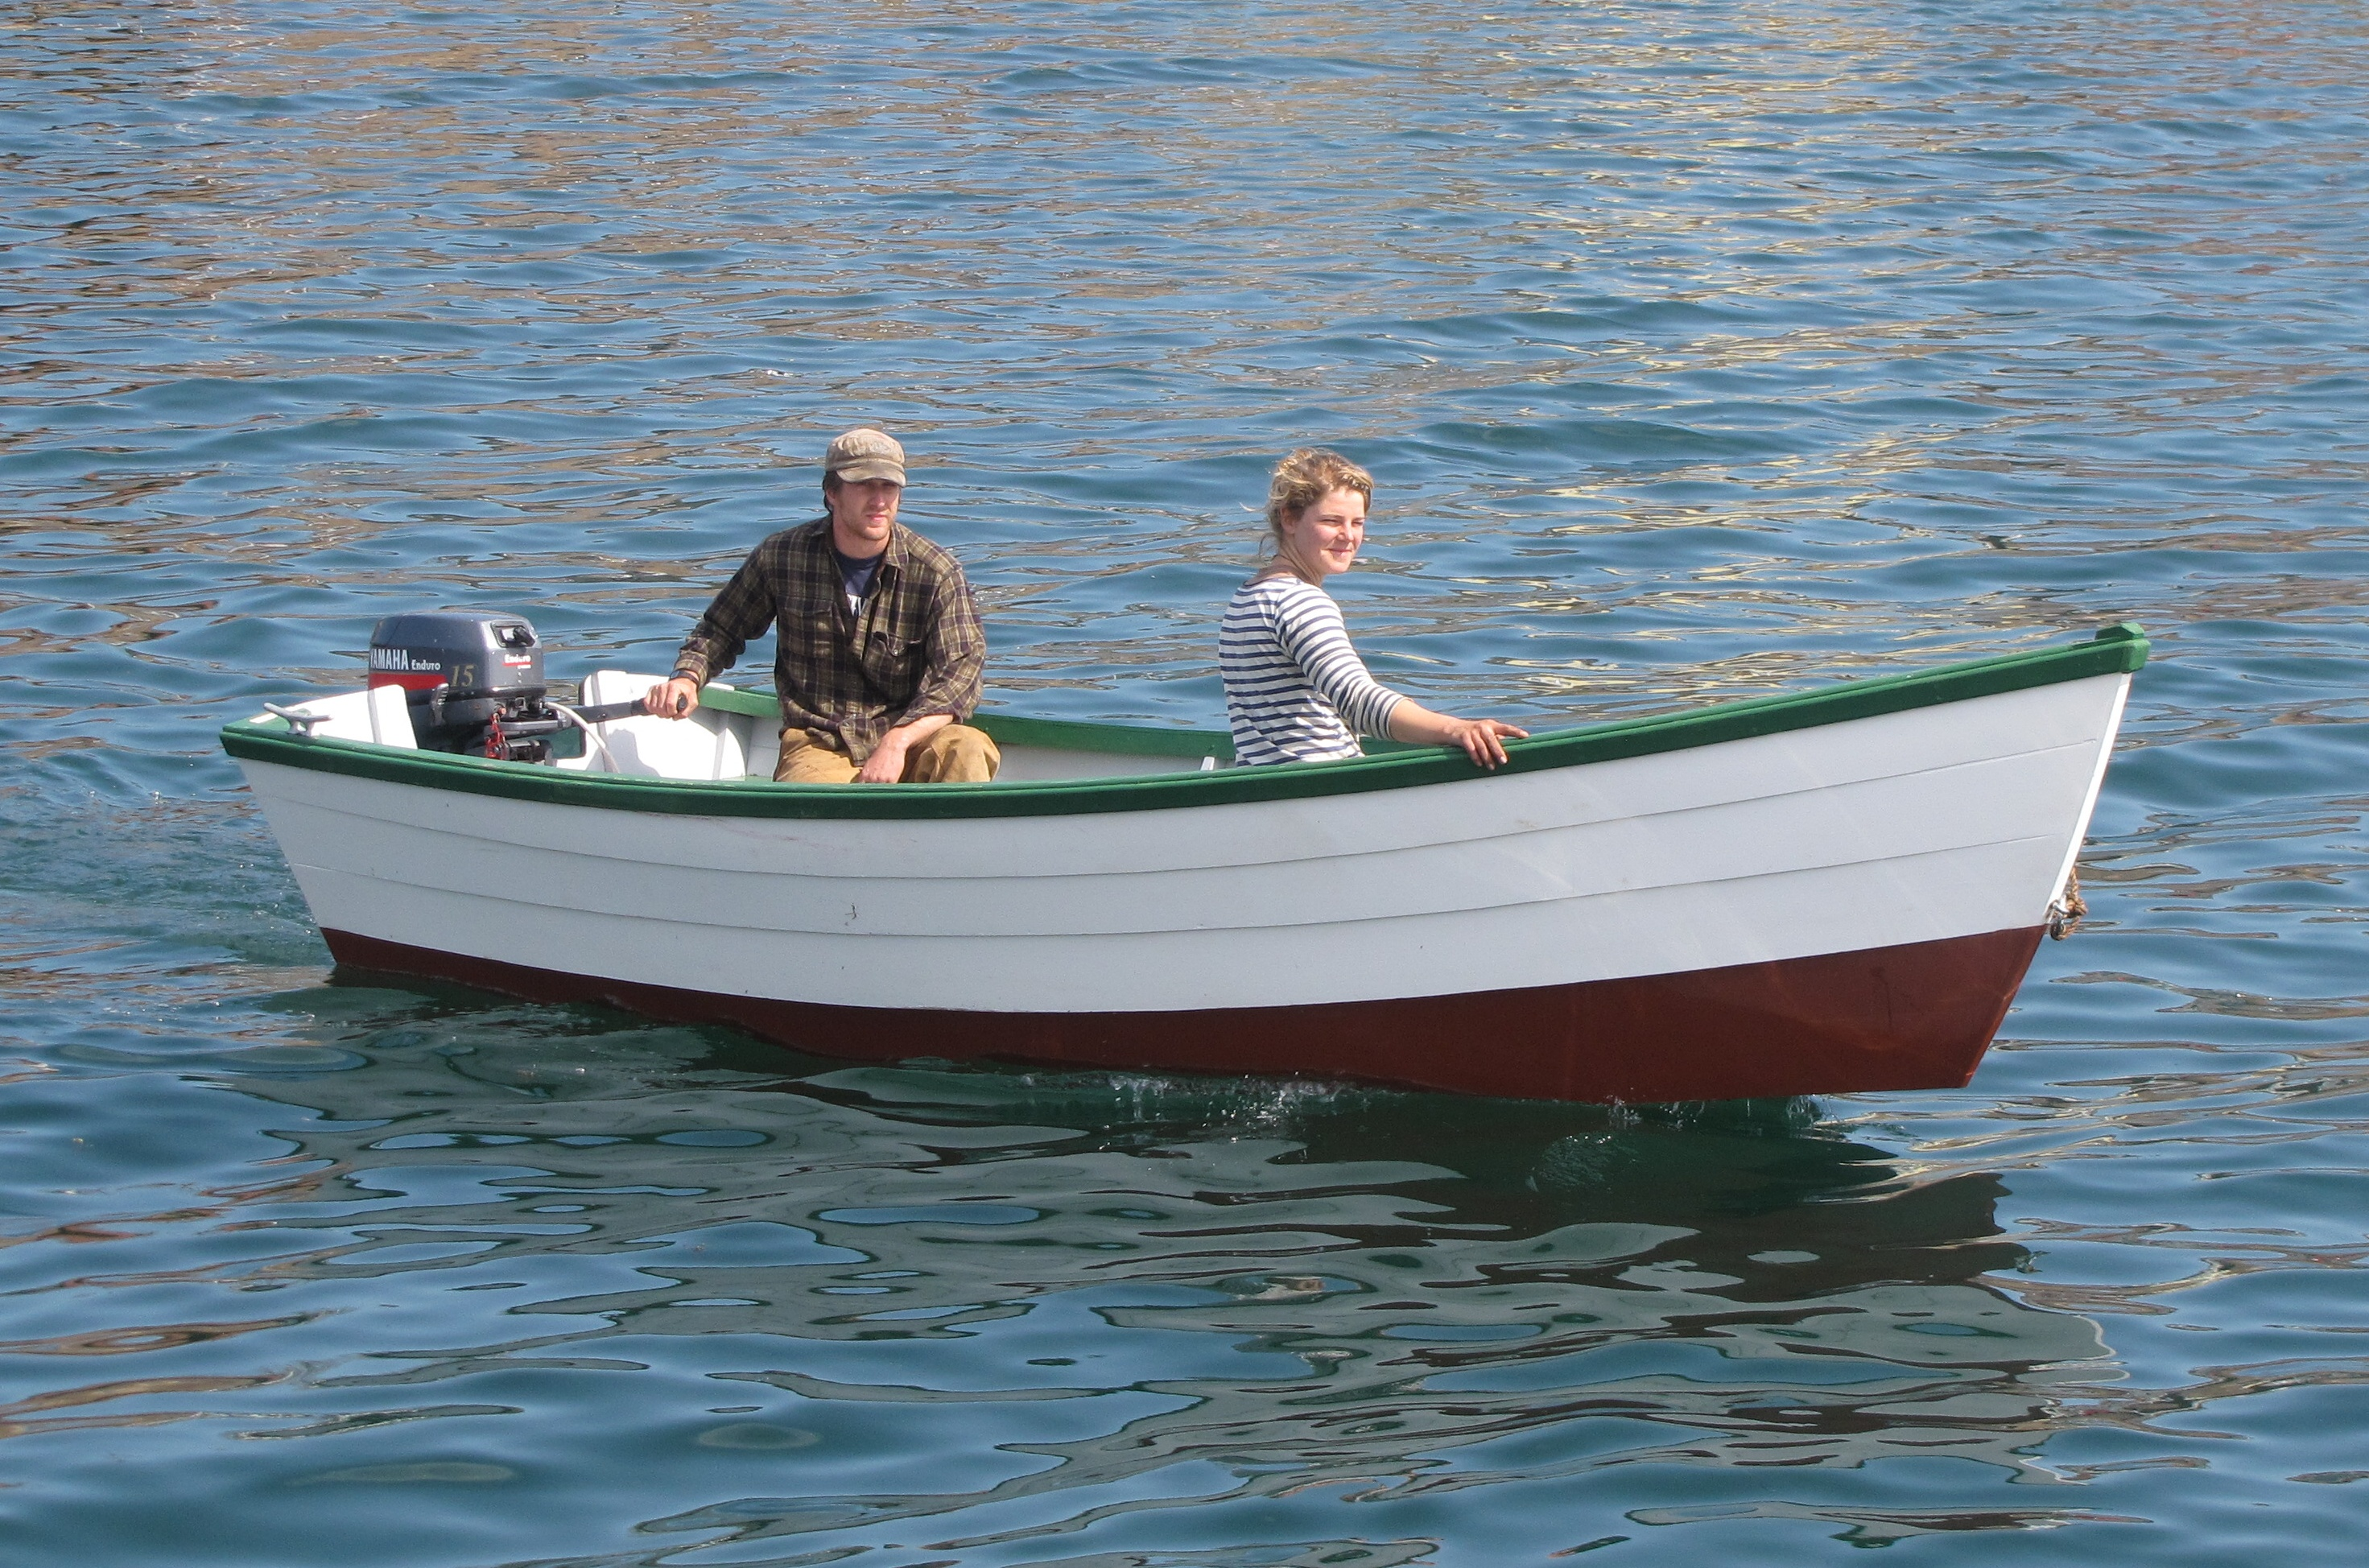 Rowing boat plans dory from finding Guide ~ Bill ship